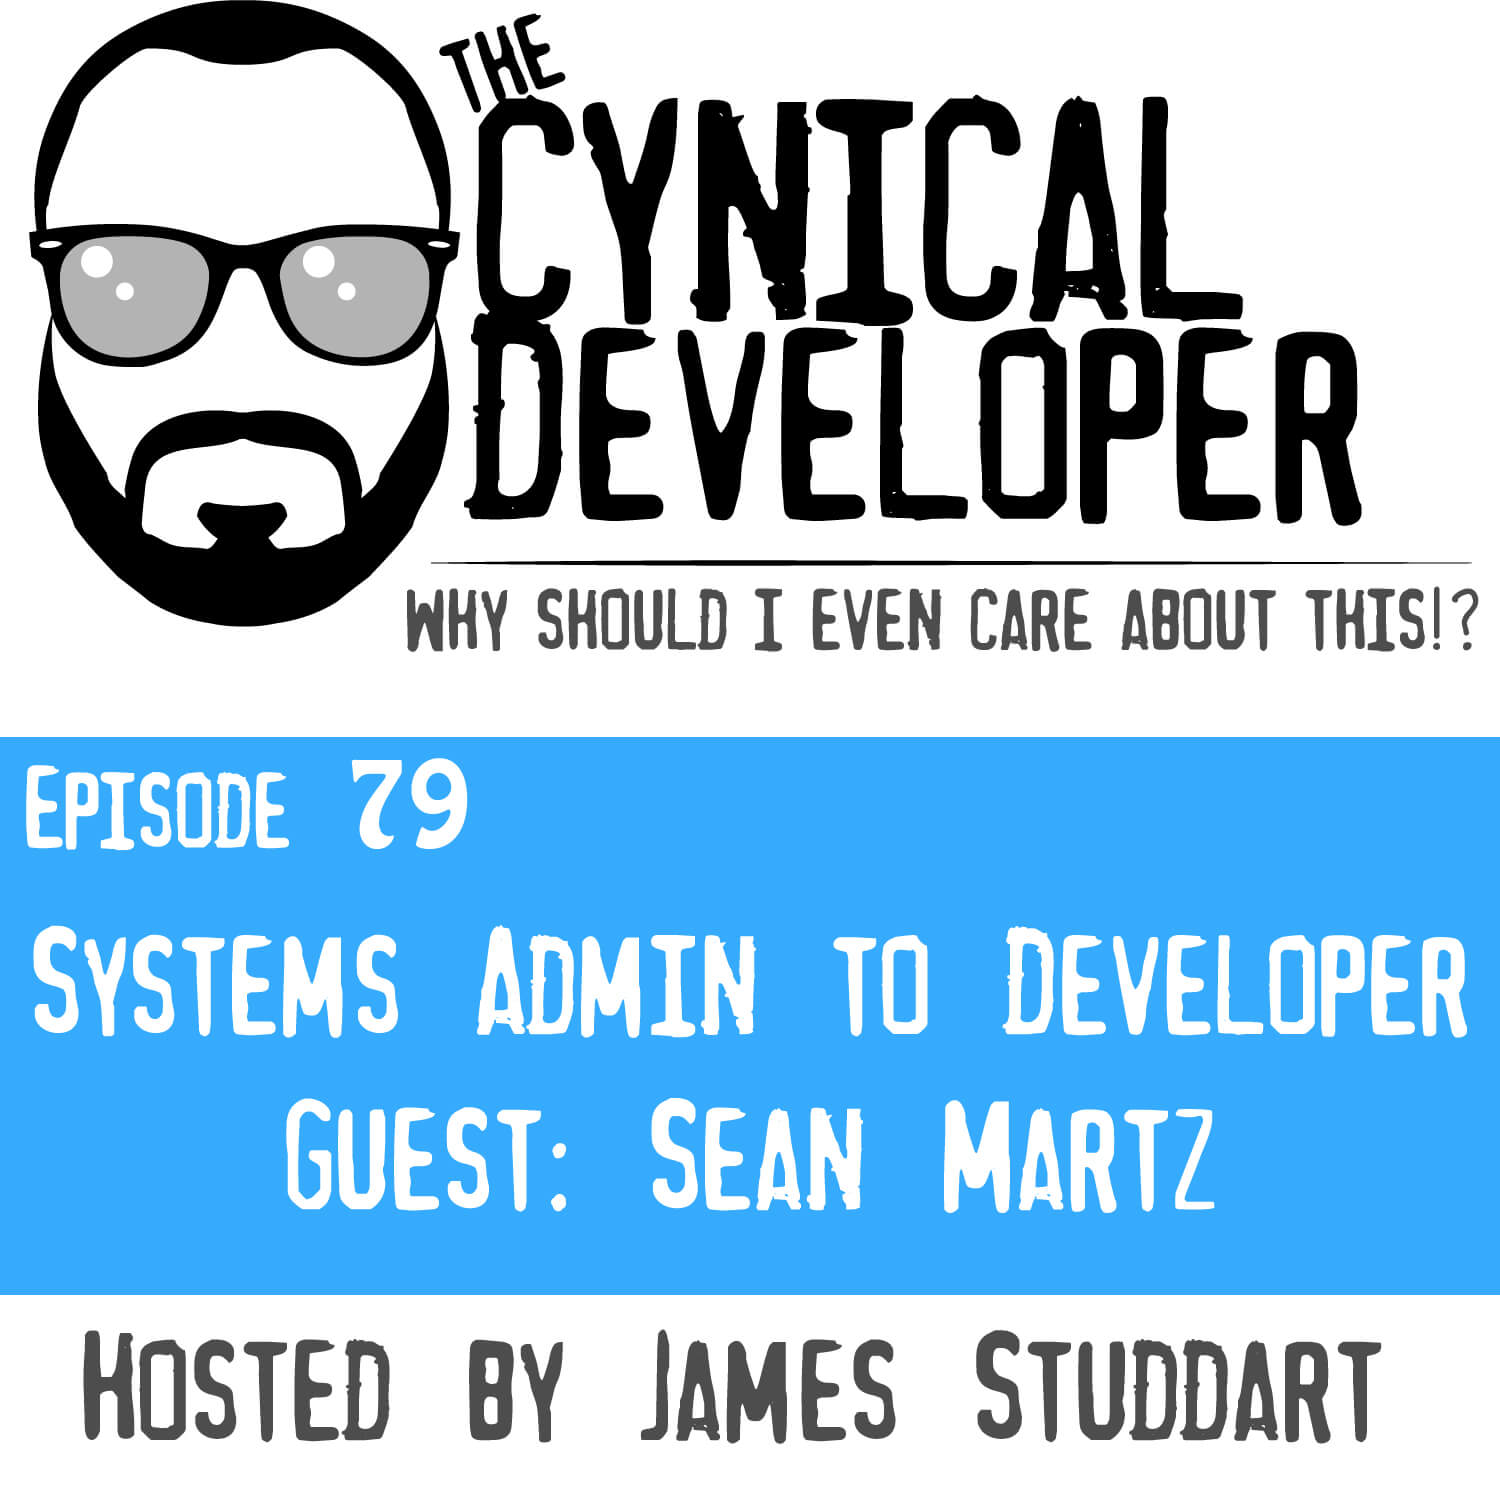 Episode 79 - Systems Admin to Developer